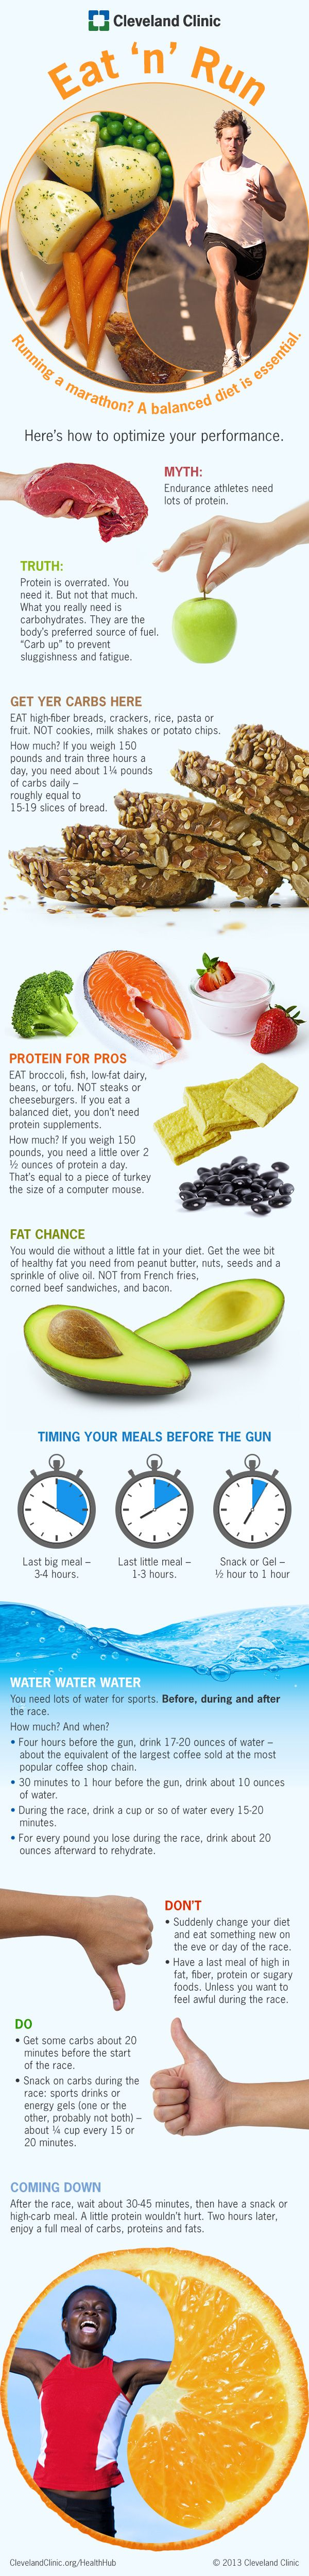 Quick weight loss secrets